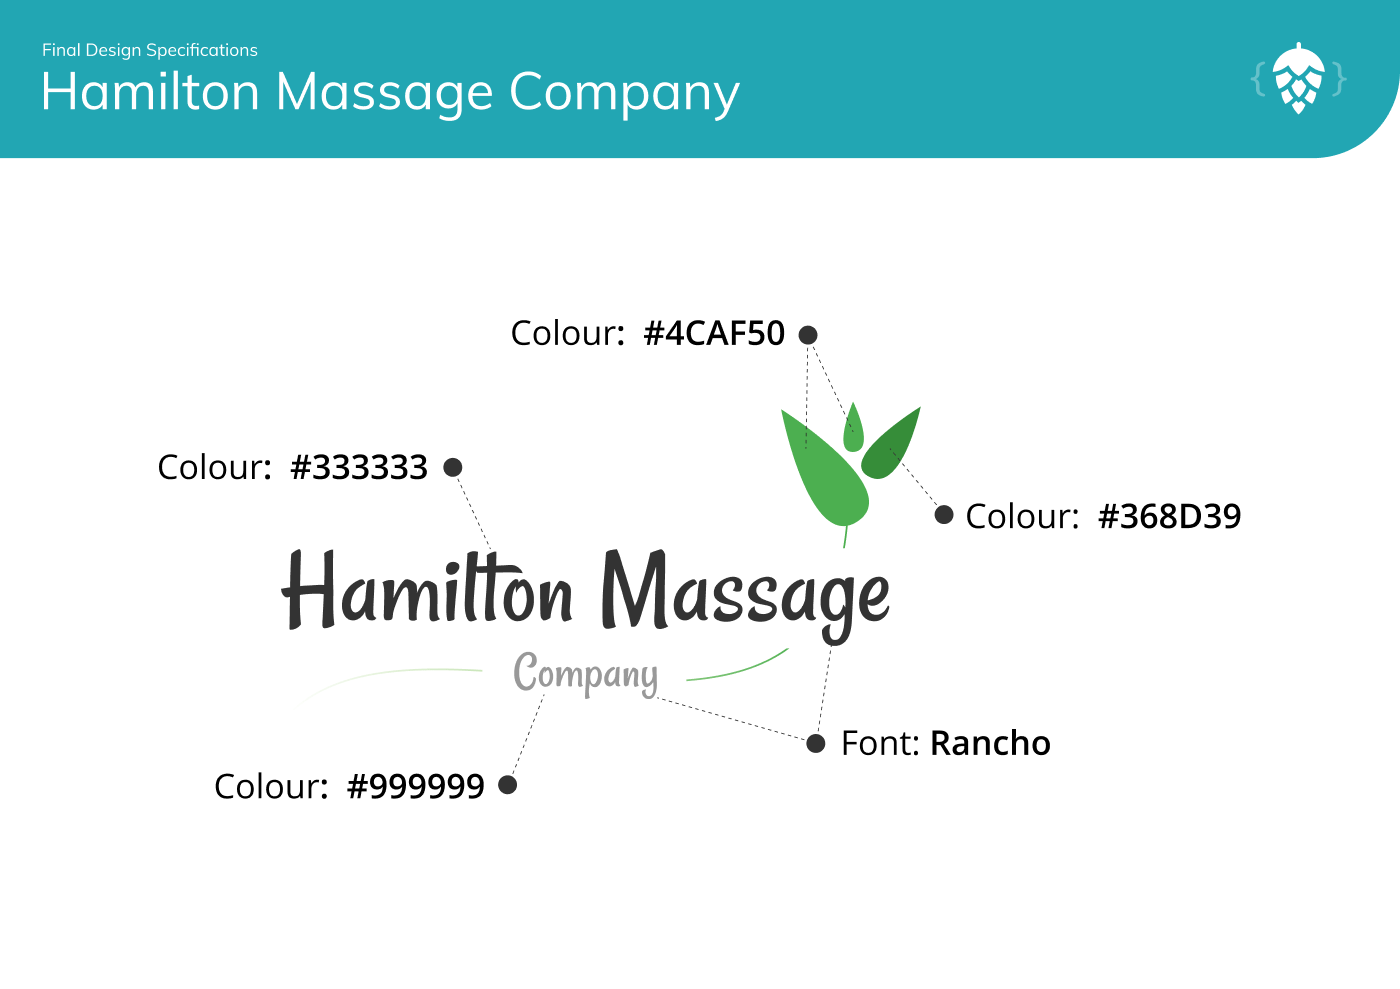 Image of additional work for Hamilton Massage Company